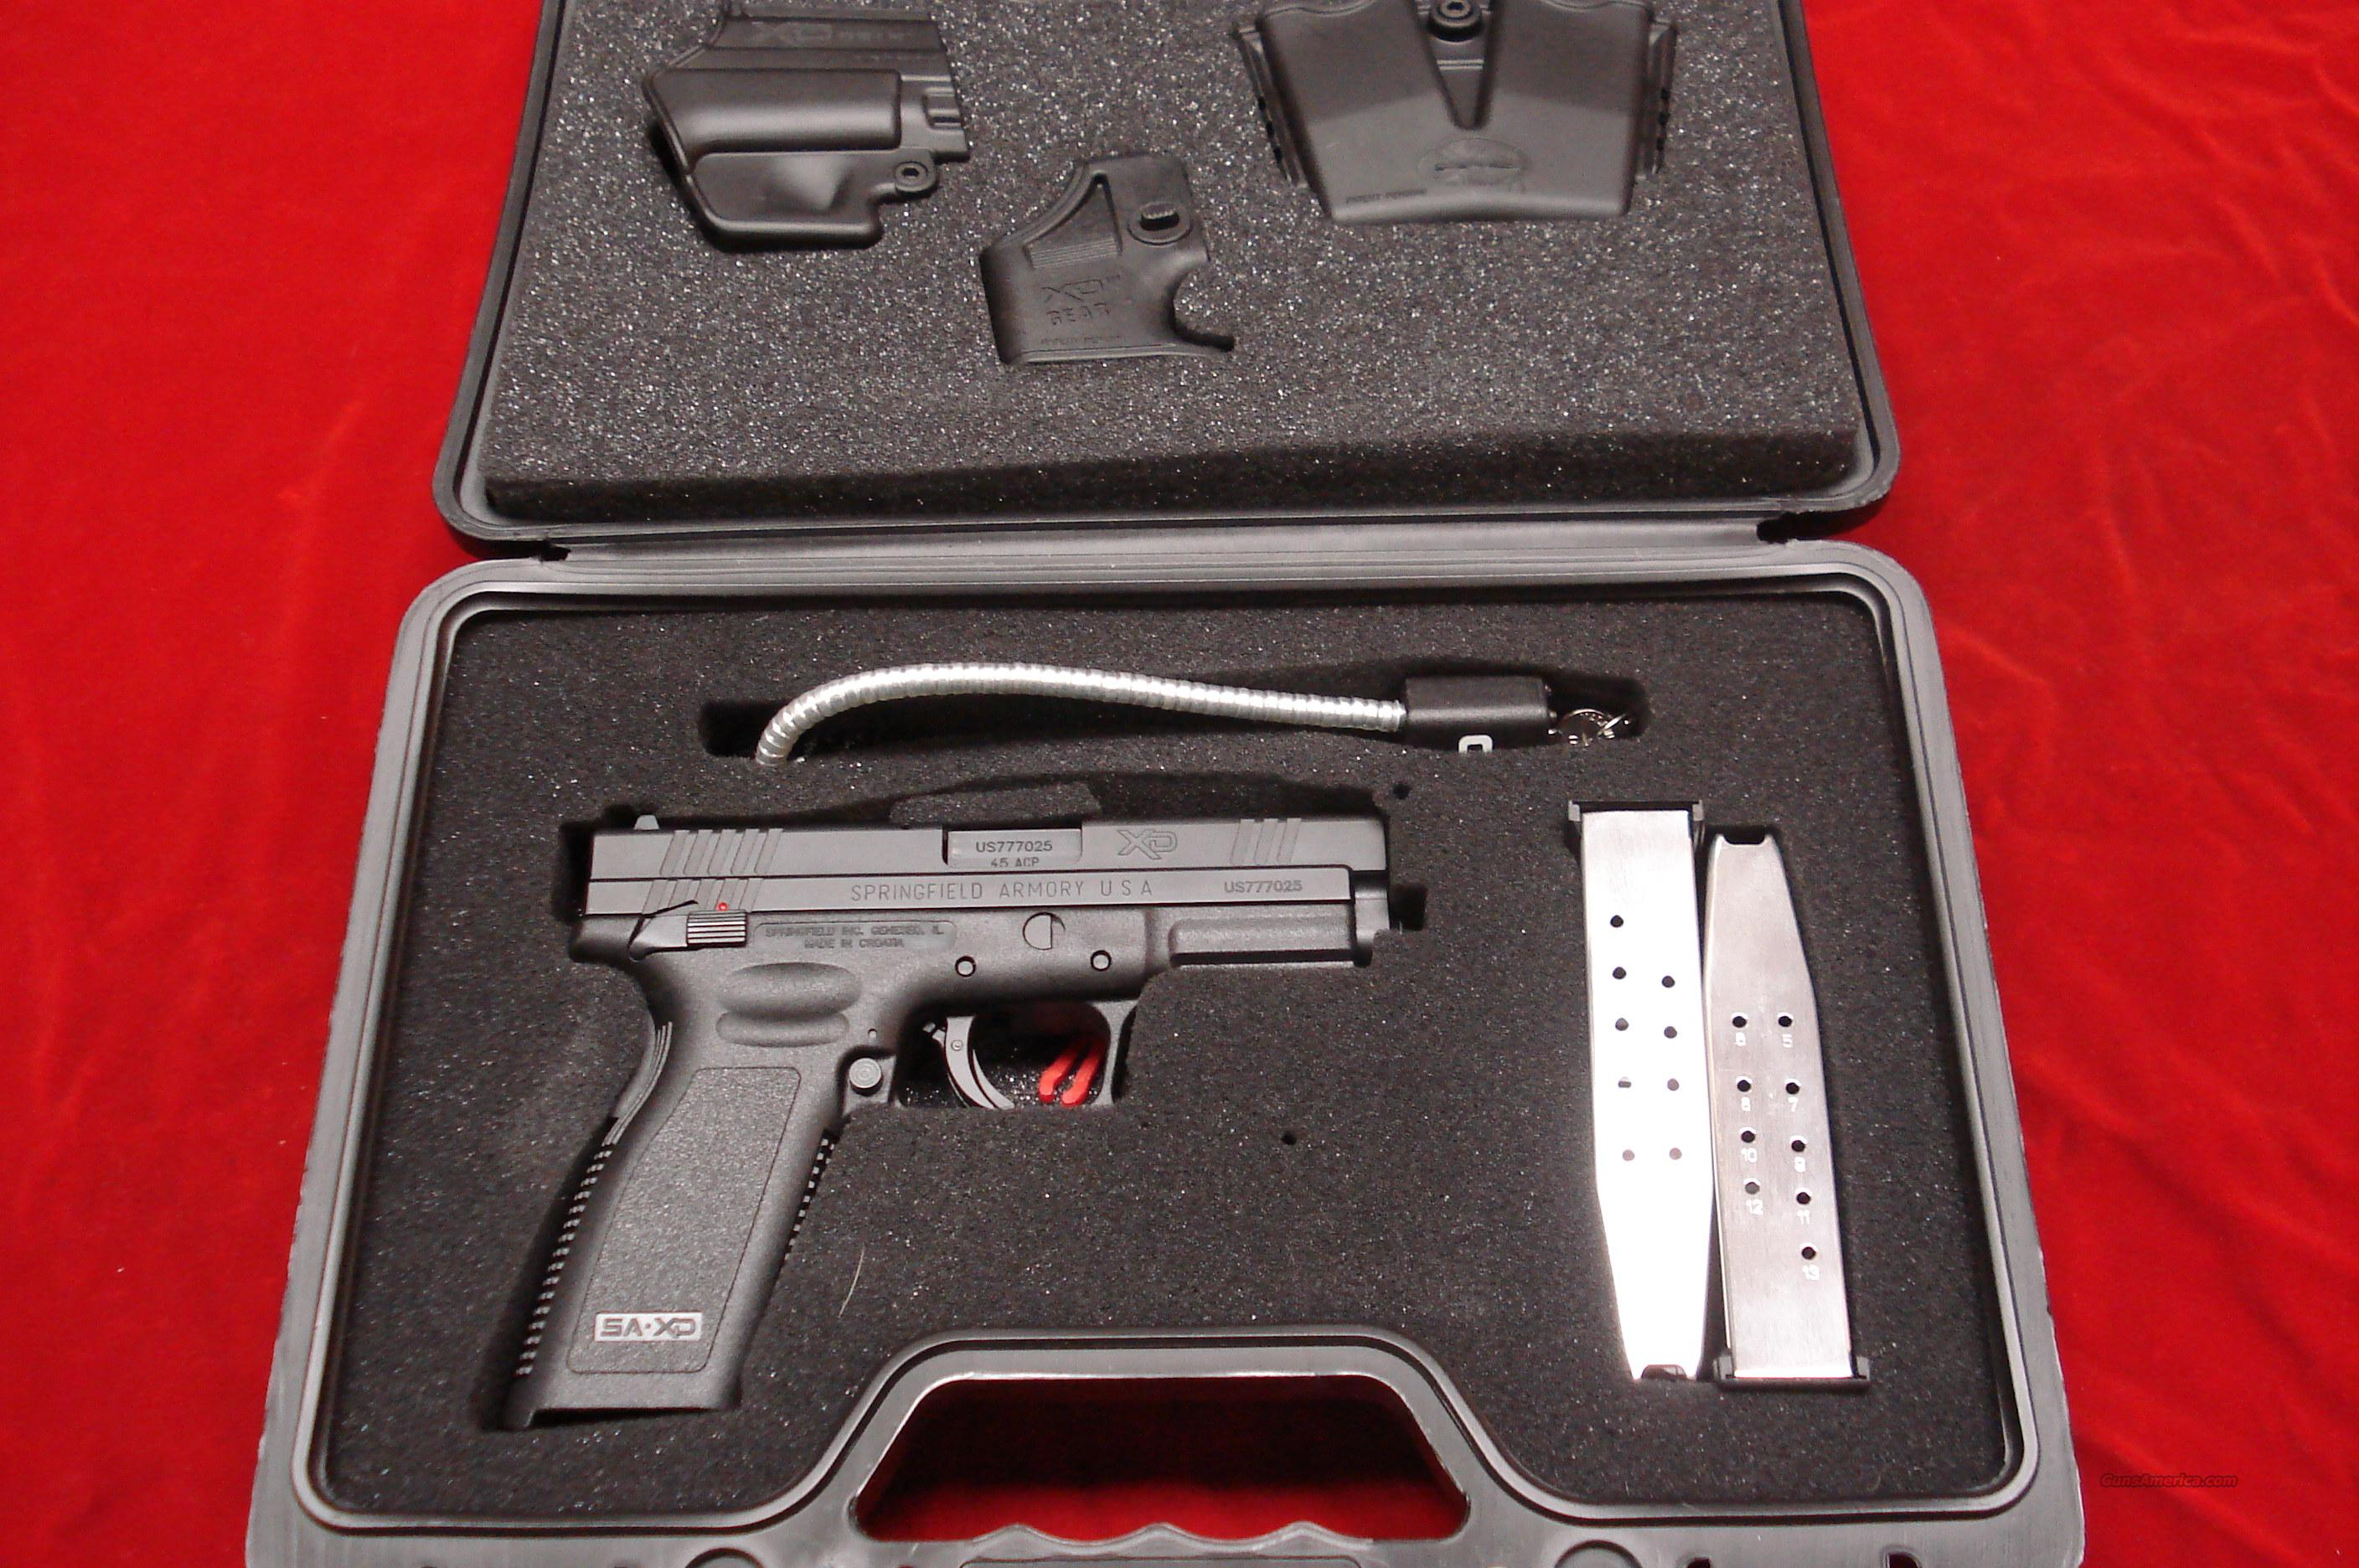 SPRINGFIELD ARMORY XD 45ACP HIGH CAP PACKAGE (THUMB SAFETY) LIKE NEW IN THE BOX   Guns > Pistols > Springfield Armory Pistols > XD (eXtreme Duty)